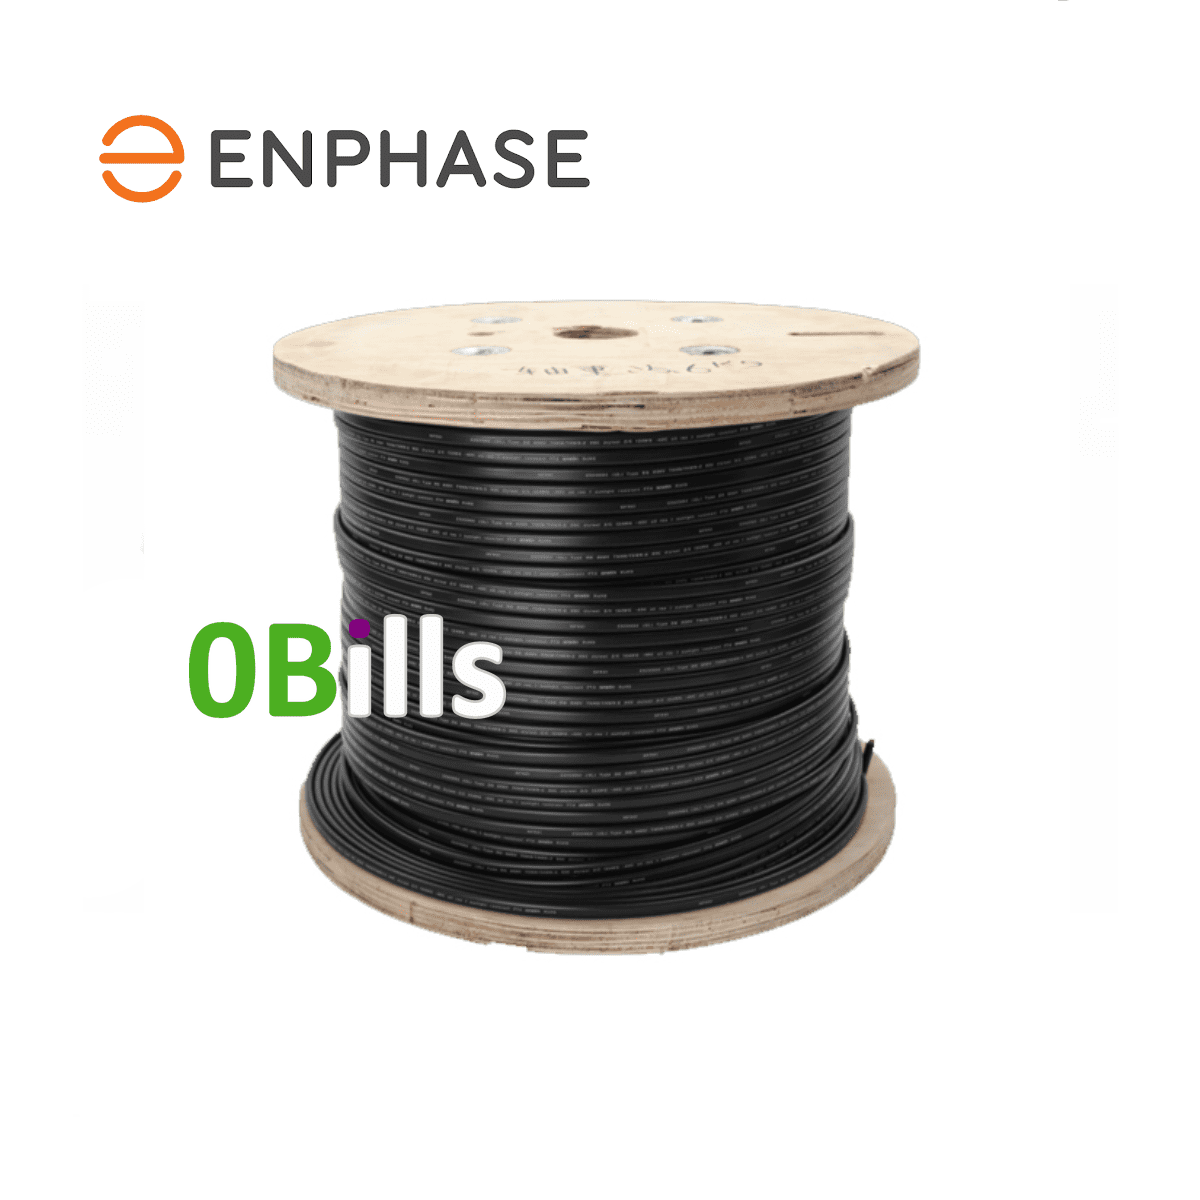 Enphase Three Phase Raw Trunk Cable for IQ Micro Inverters on Sale